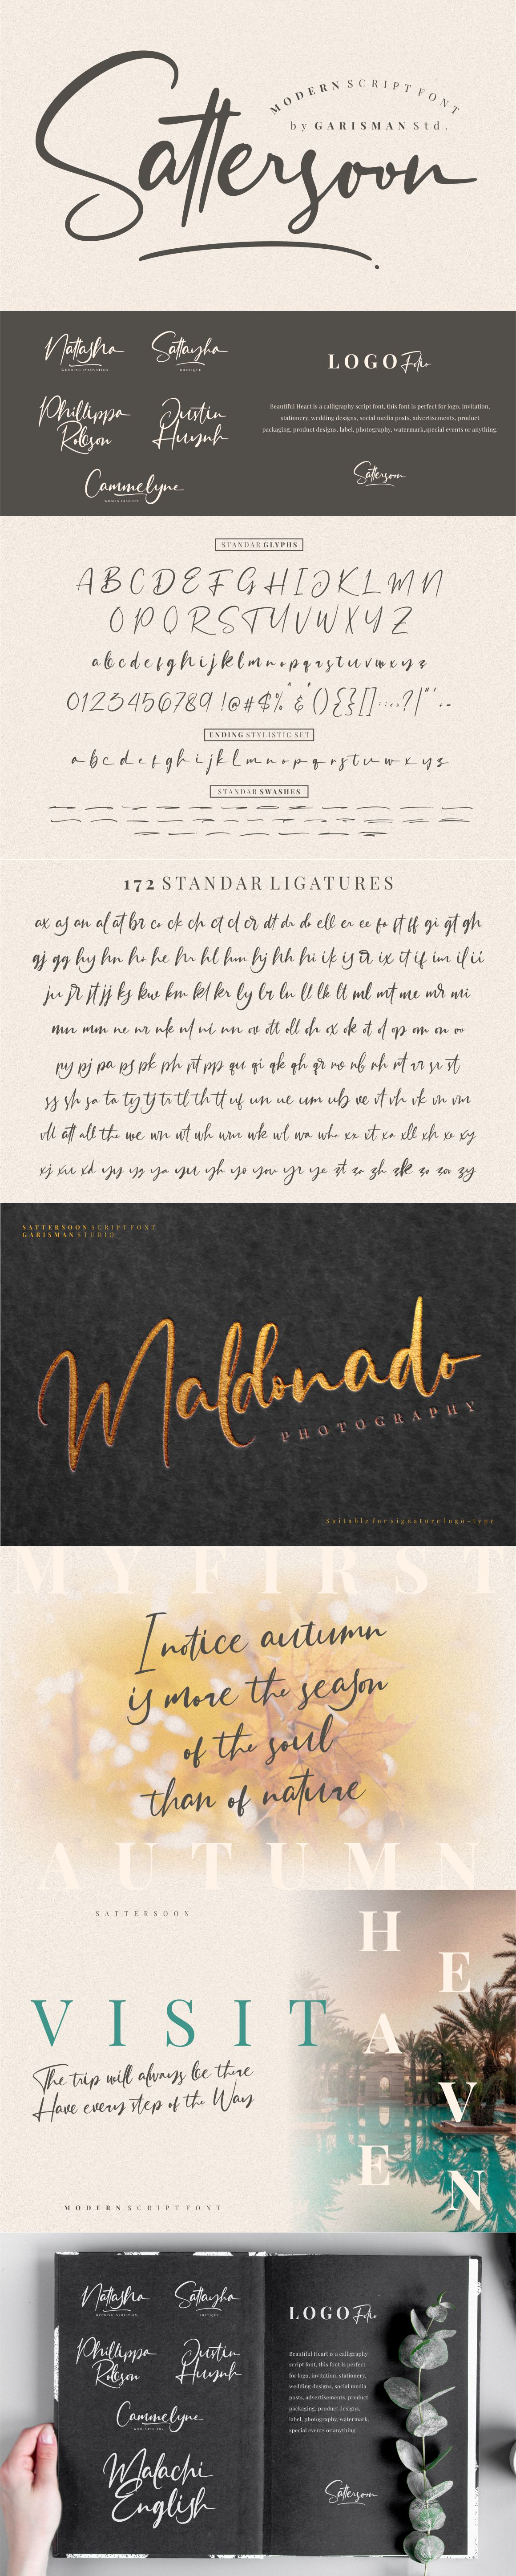 Sattersoon - Modern Script Font example image 11